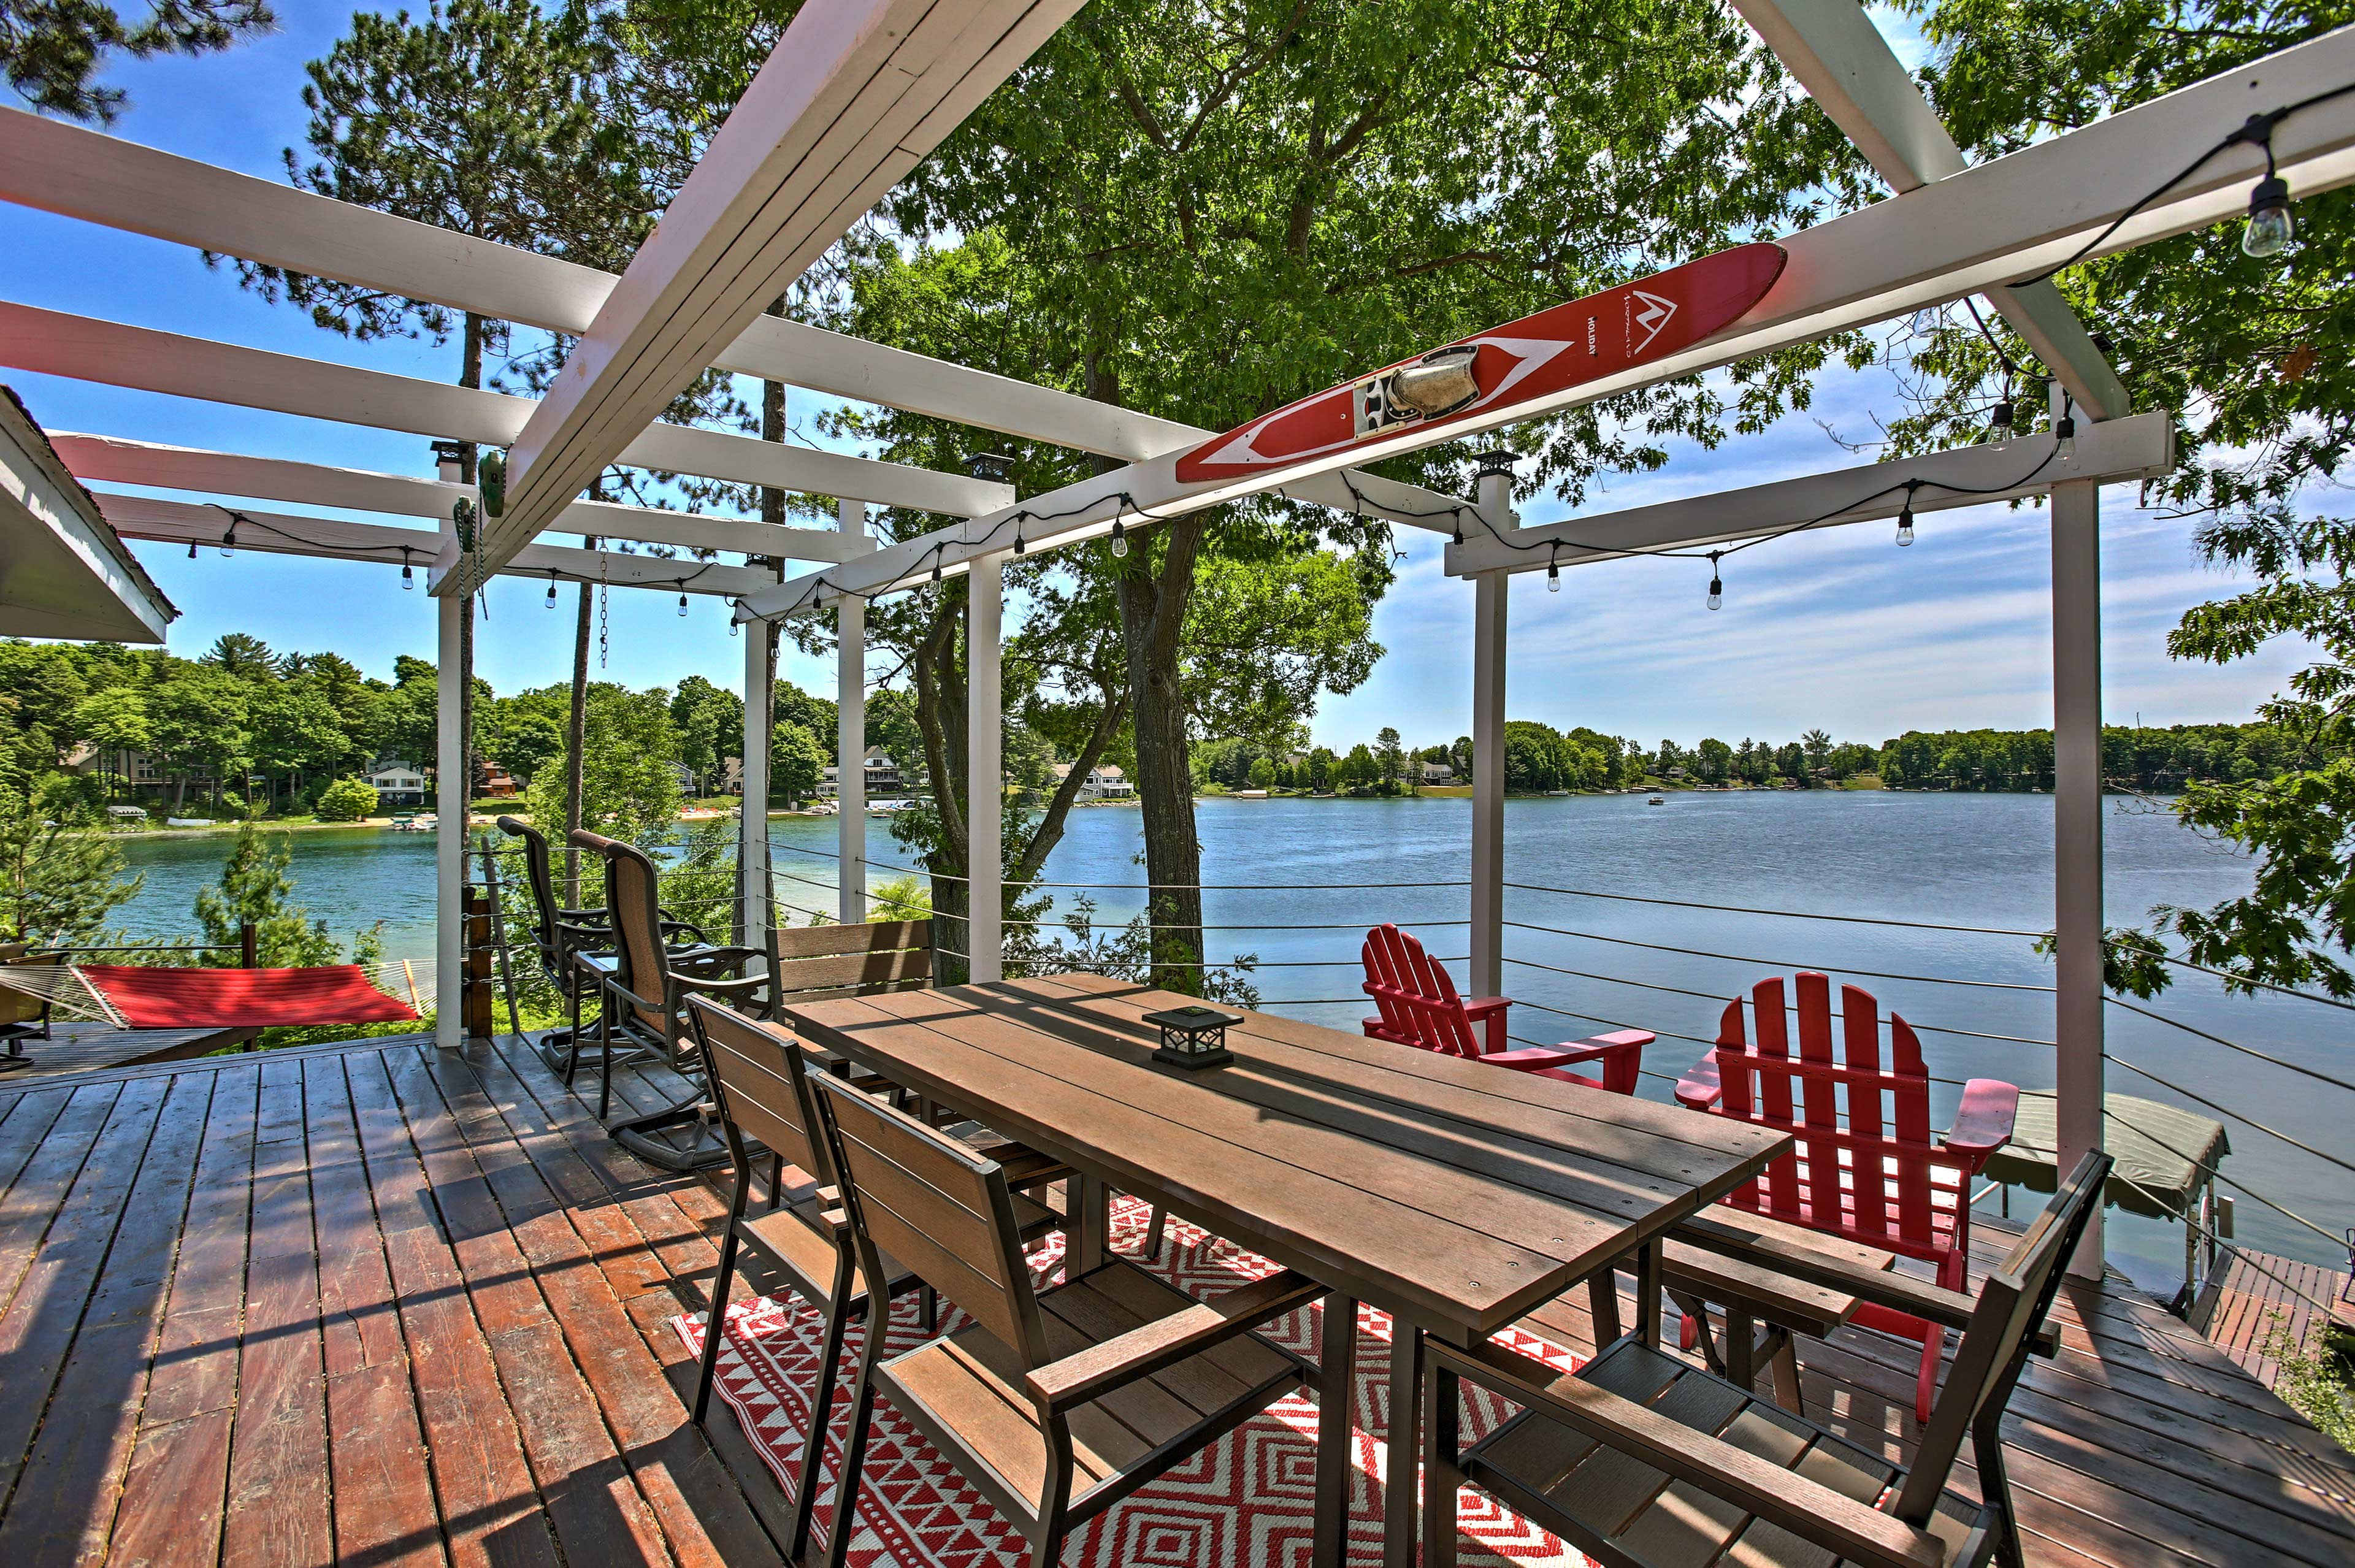 Unwind in this 2-bedroom, 1.5-bathroom vacation rental cottage in Traverse City.